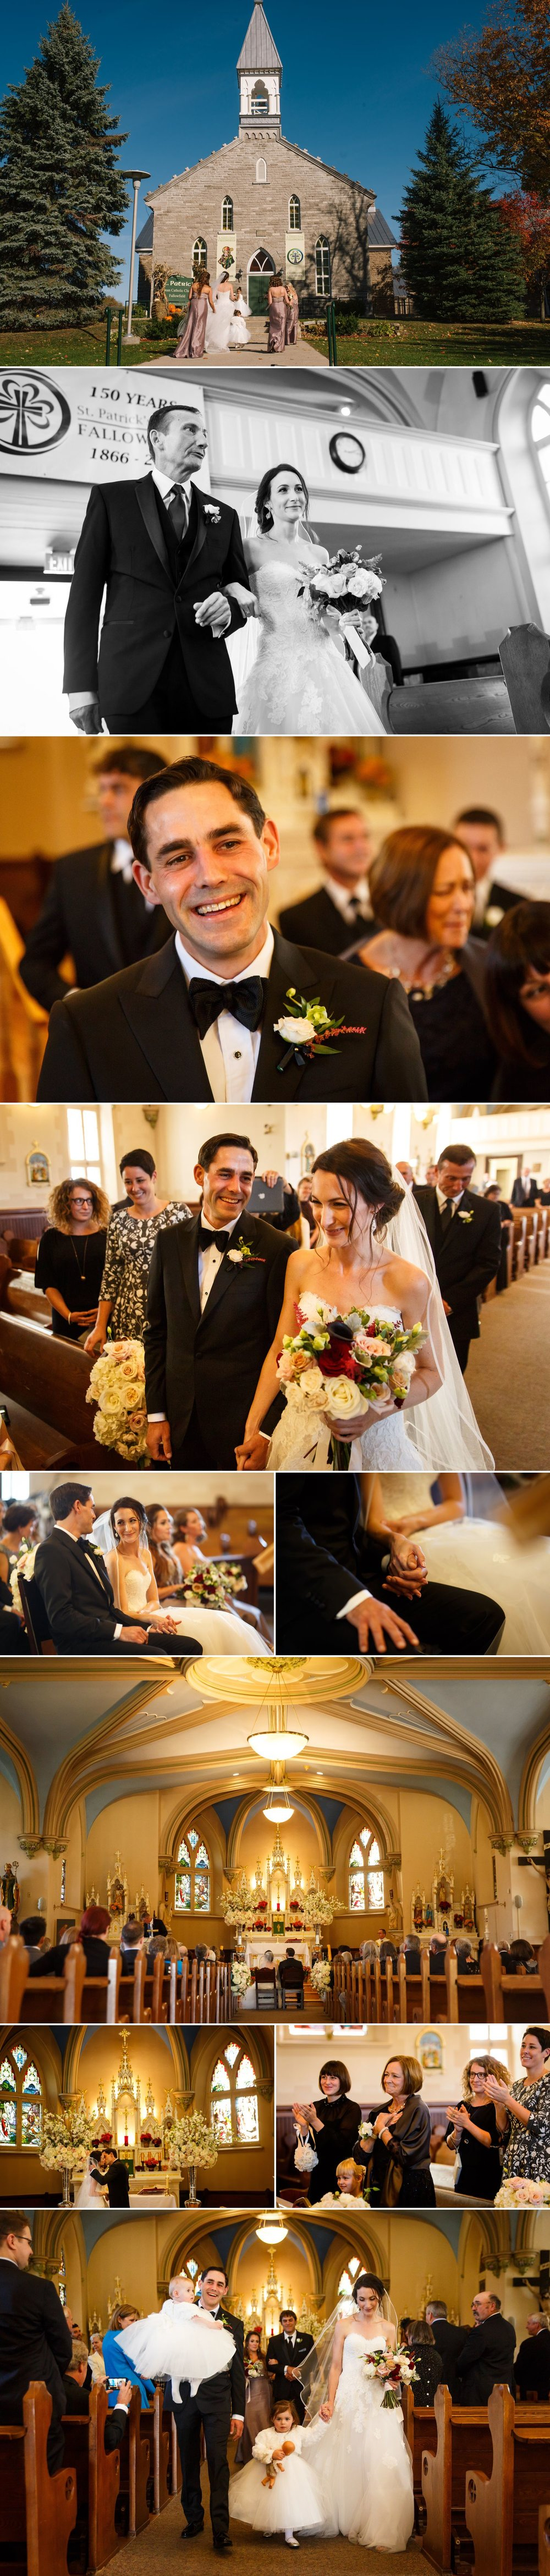 Wedding ceremony at St.Patrick's Church in Barrhaven Ontario